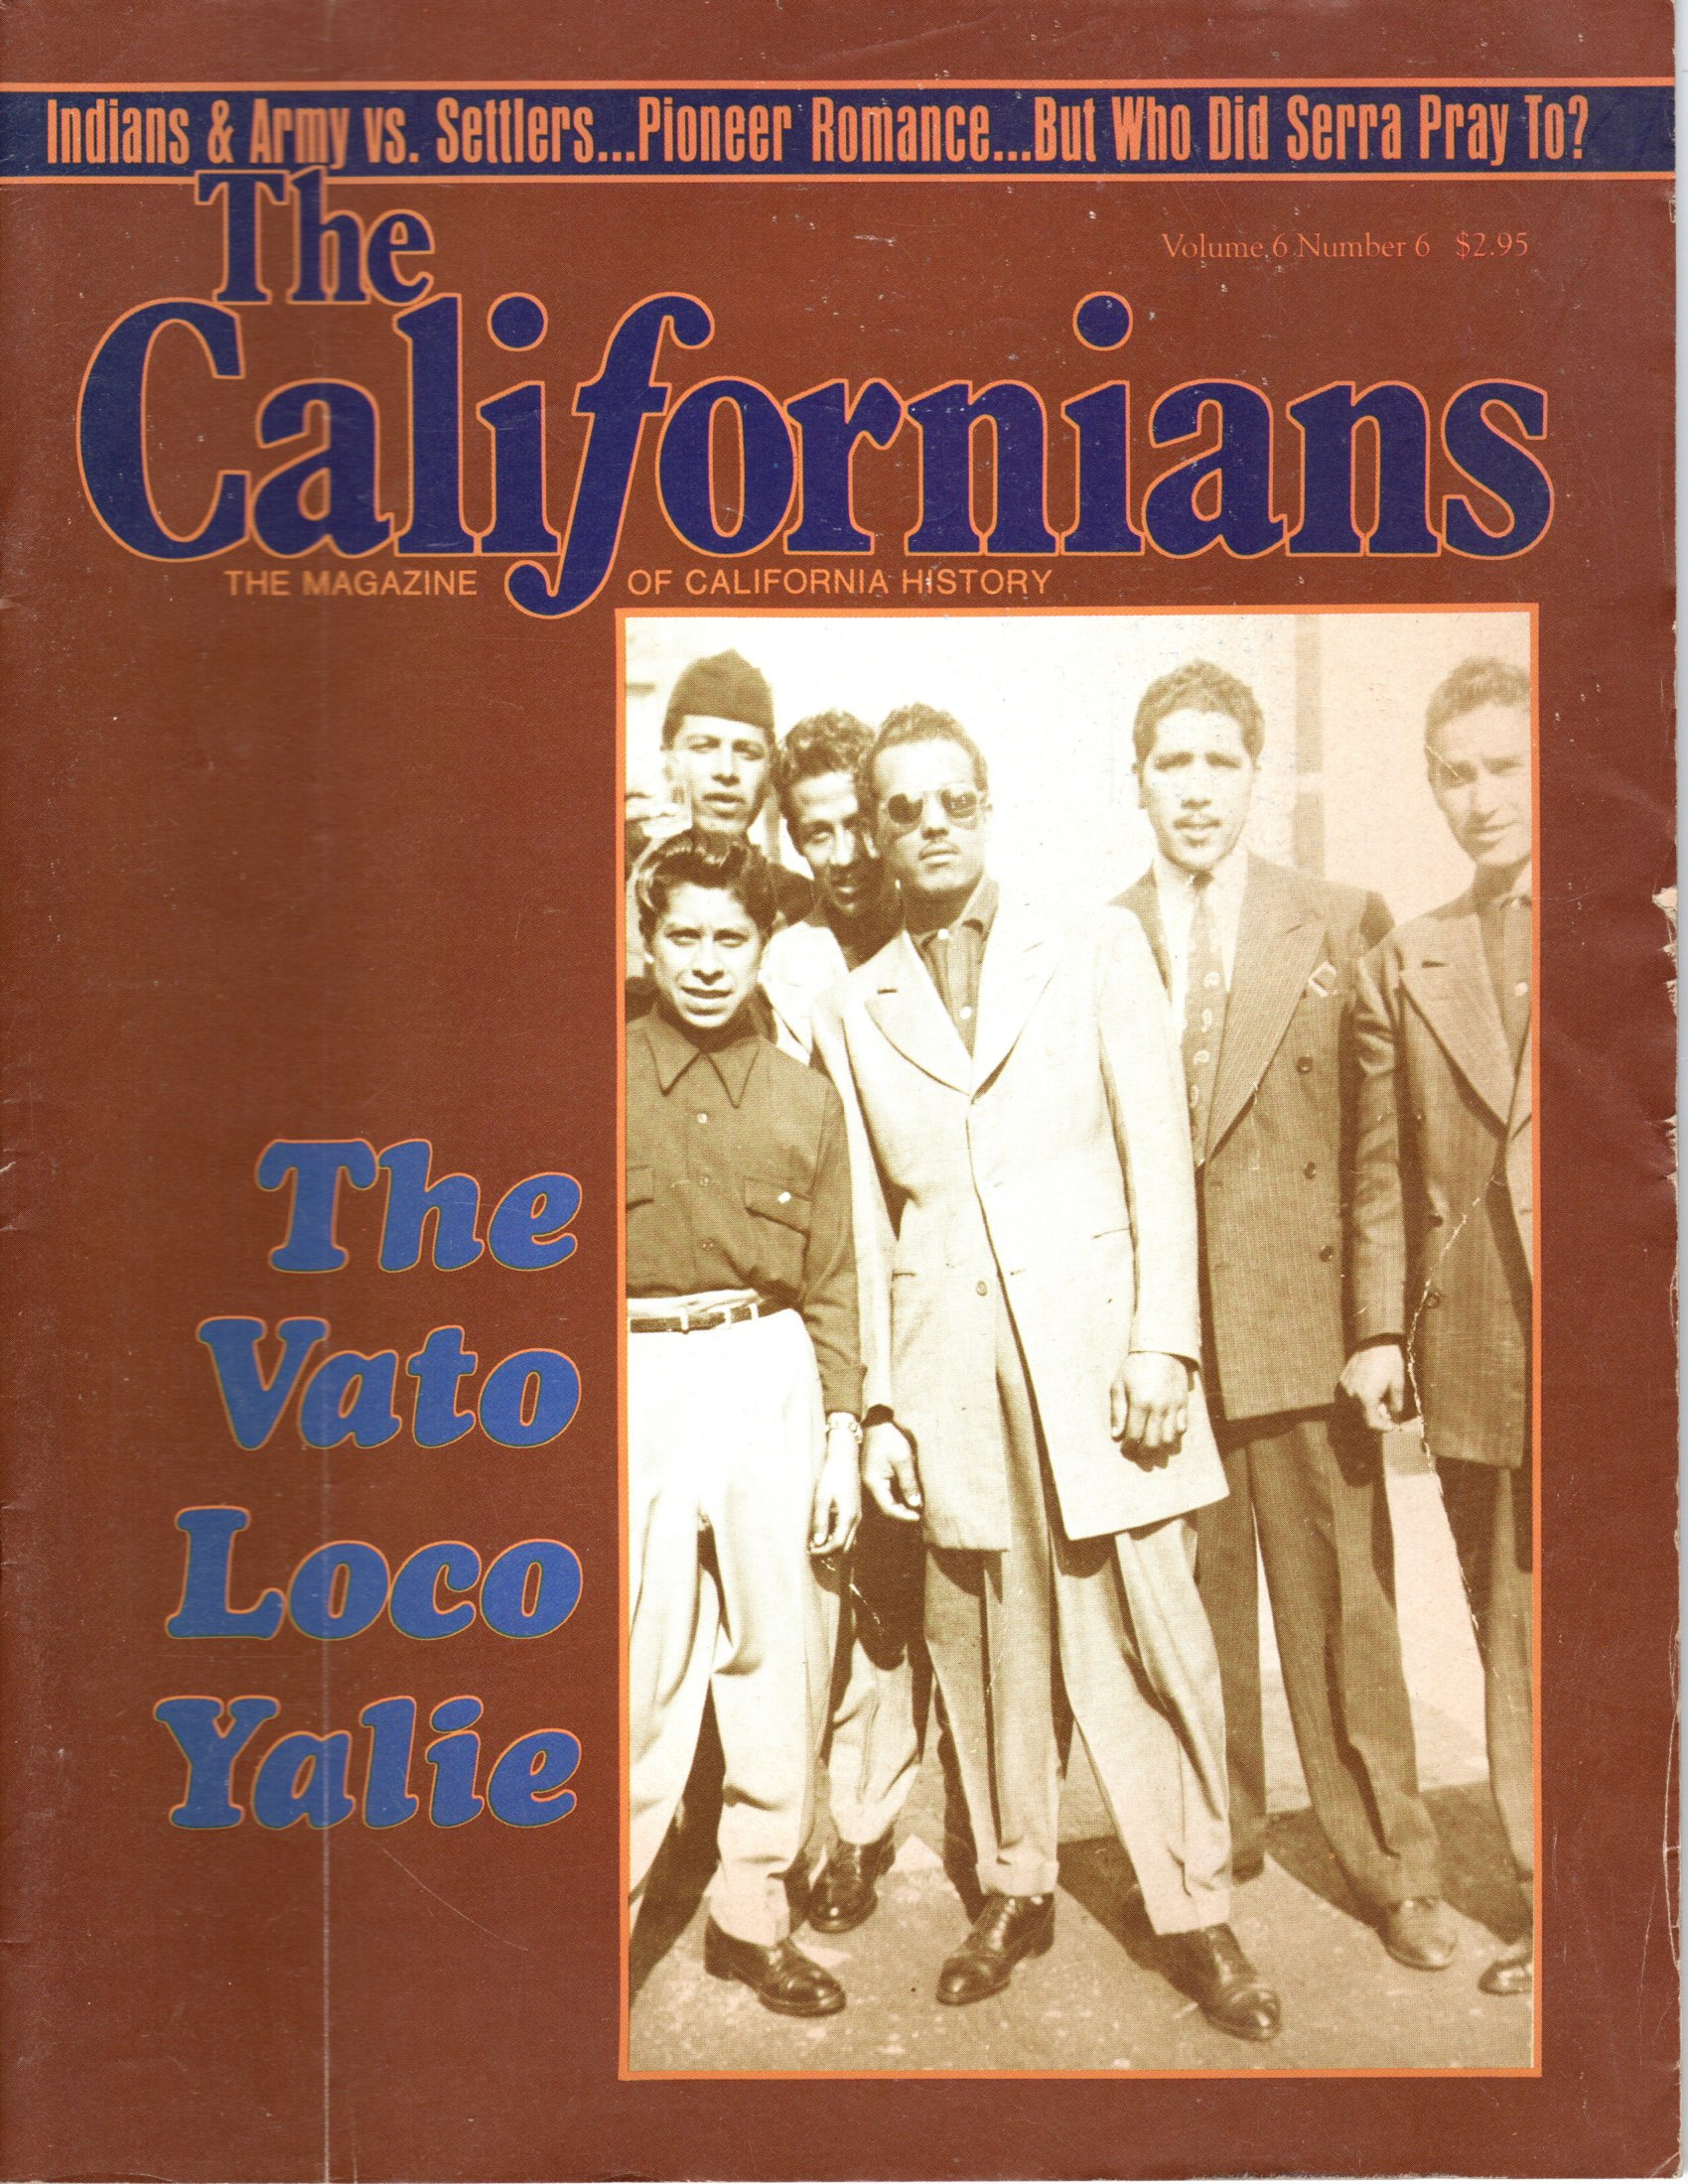 Image for The Californians. The Magazine of California History. The Vato Loco Yalie.  [Volume 6, Number 6, November/December 1988]